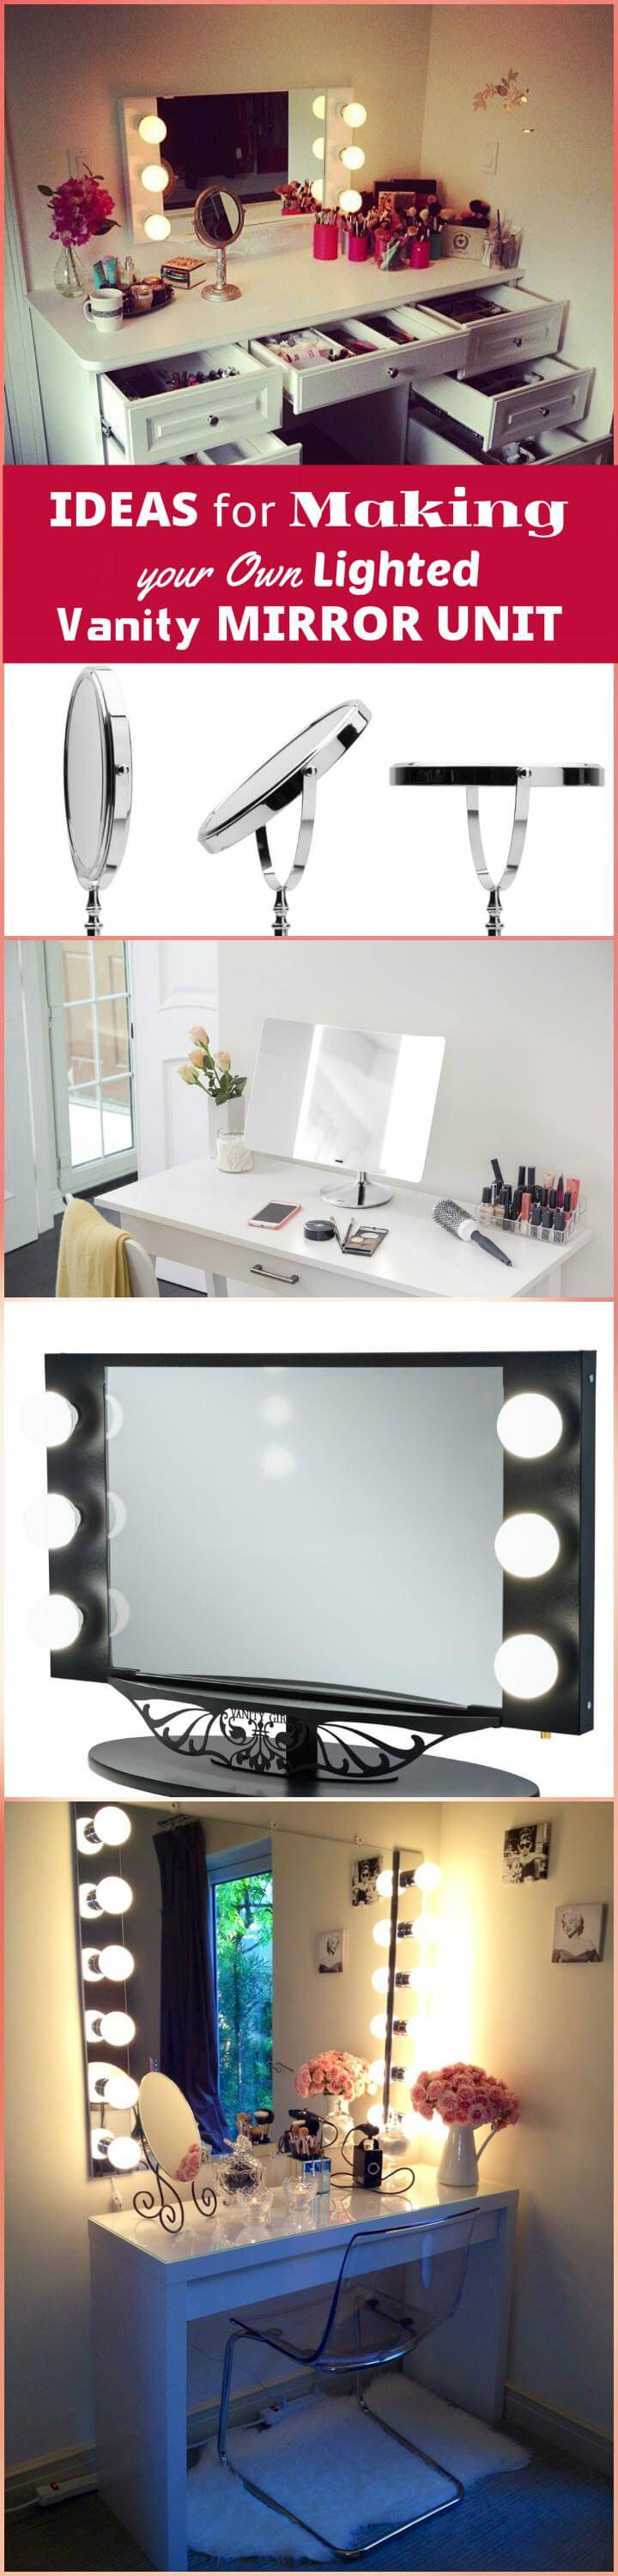 beautiful DIY ideas for making your own lighted vanity mirror unit